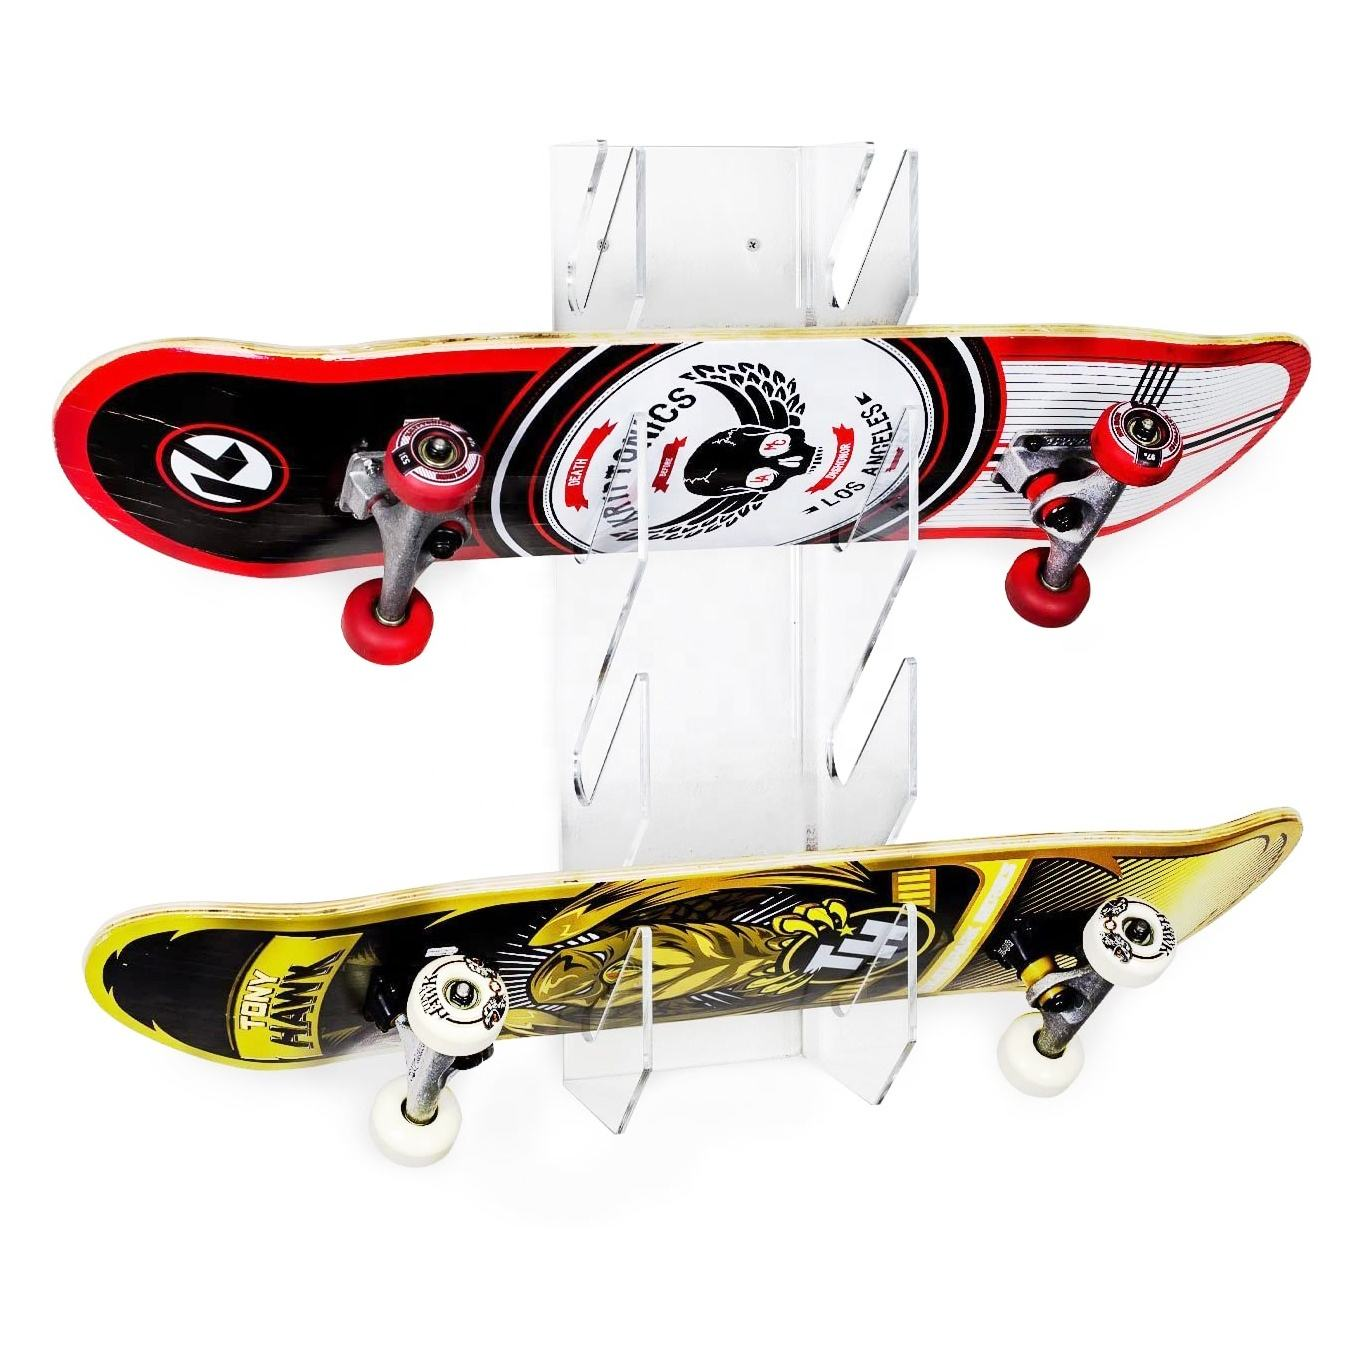 Clear Acrylic Wall Mount Display Skateboard Storage Display Rack